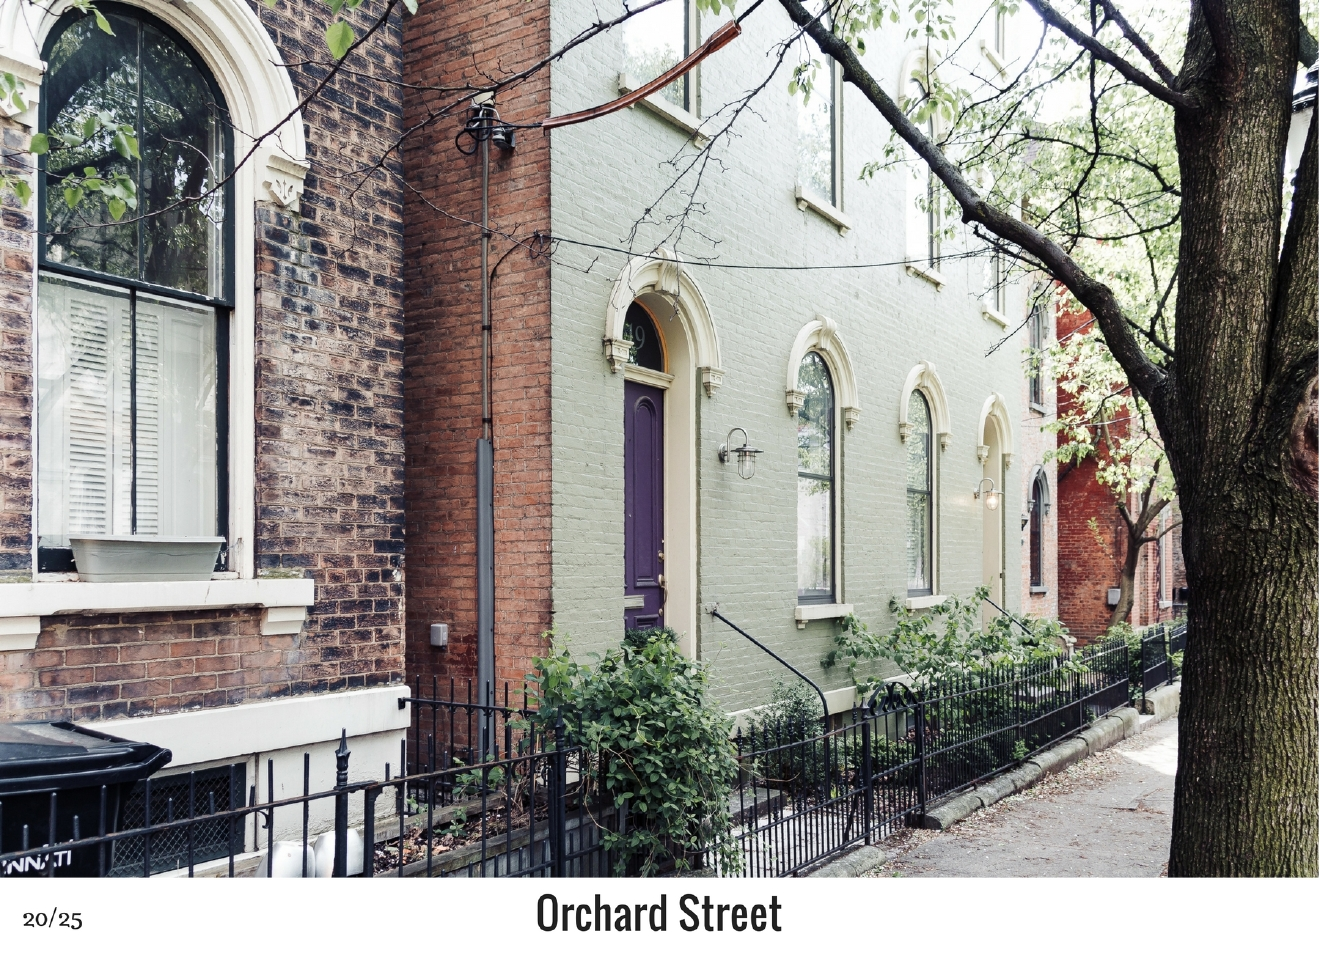 WHAT: Orchard Street / WHERE: Over-the-Rhine, between Main and Sycamore Streets / Image: Justin Kohl / Published: 10.27.16